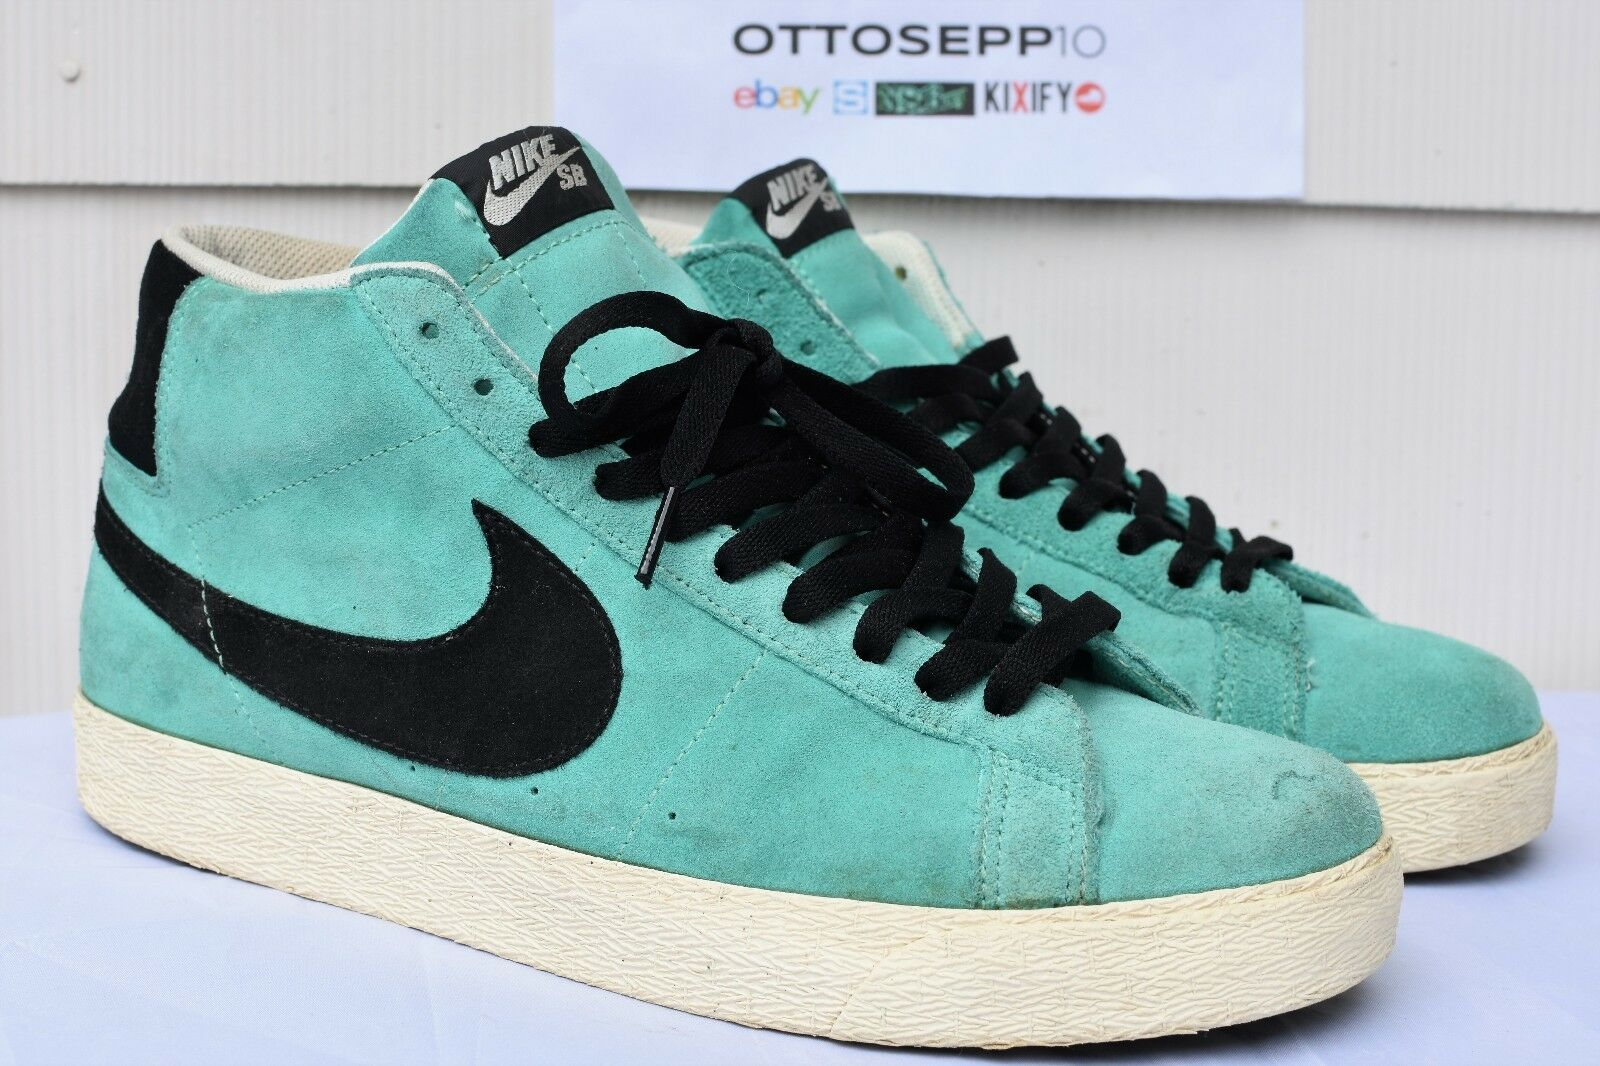 2008 11 NIKE SB Azure Sea Crystal aqua black teal suede vtg high dunk 310801 401